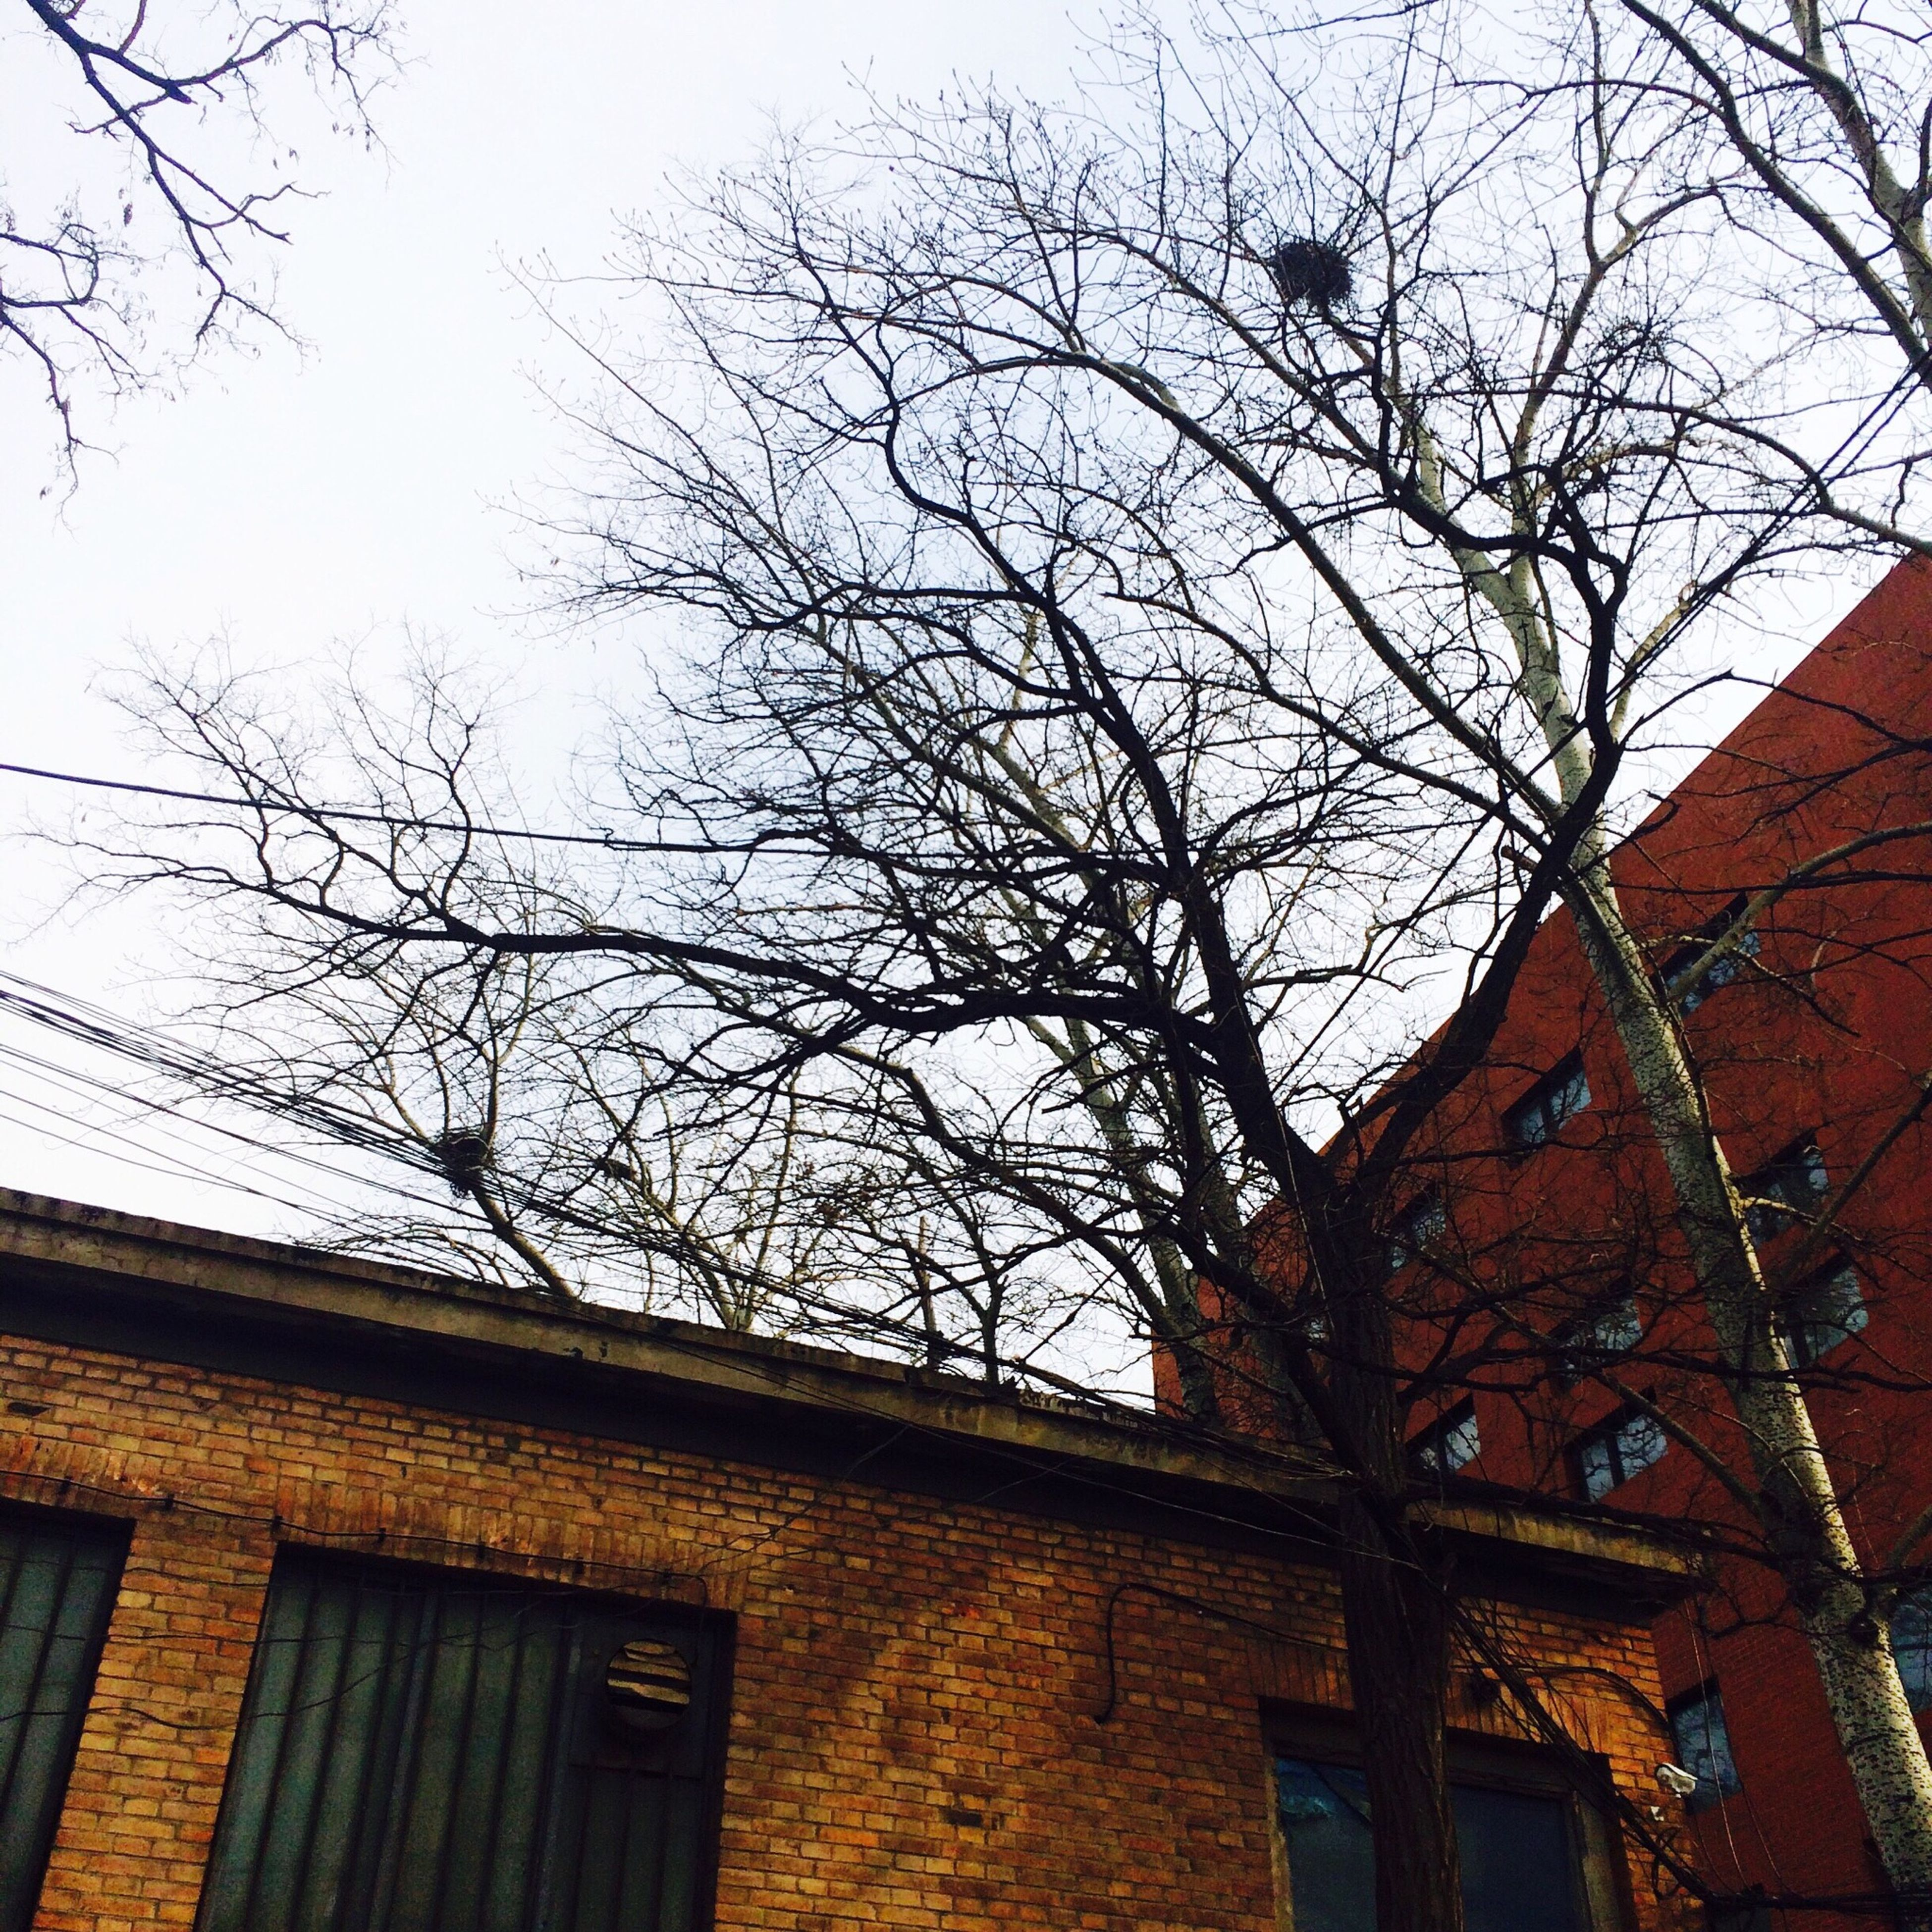 building exterior, architecture, built structure, low angle view, bare tree, tree, branch, residential building, residential structure, house, sky, window, building, clear sky, outdoors, day, no people, city, roof, high section